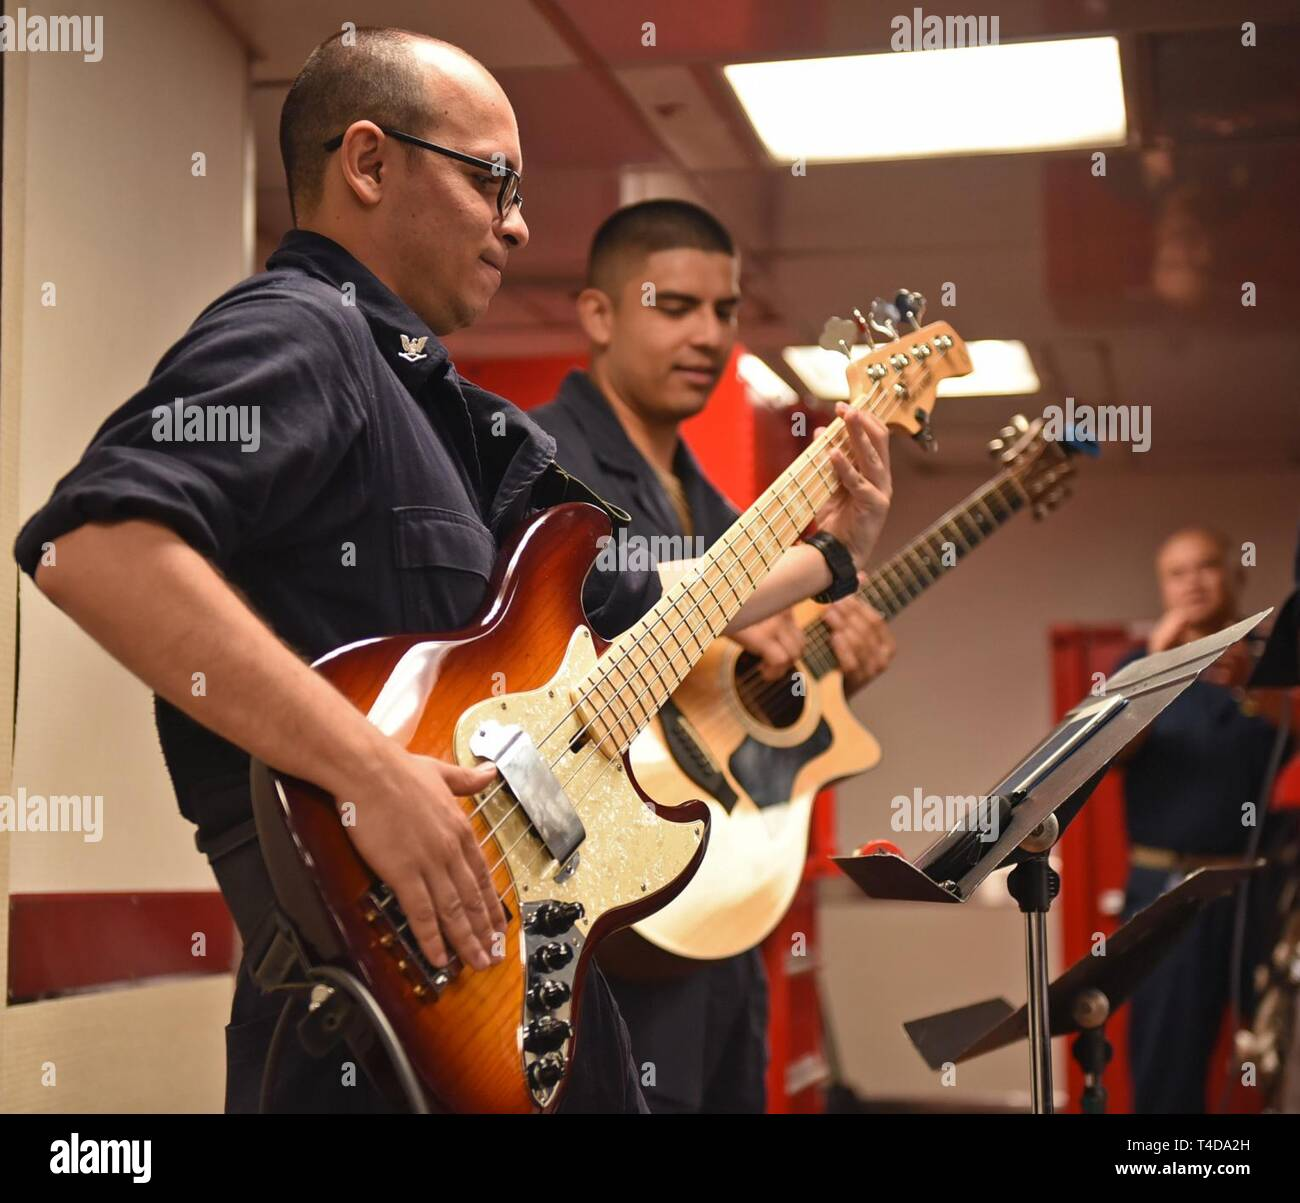 SOUTH CHINA SEA (March 22, 2019) - Musician 3rd Class Jose Figueroa, from Ponce, P.R., and Musician Seaman Jorge Cabrera, from Los Angeles, performs with the 7th Fleet Band, Far East Edition during a Women's History Month celebration on the mess decks of U.S. 7th Fleet Flagship USS Blue Ridge (LCC 19). Blue Ridge is the oldest operational ship in the Navy and, as 7th Fleet command ship, actively works to foster relationships with allies and partners in the Indo-Pacific Region. - Stock Image